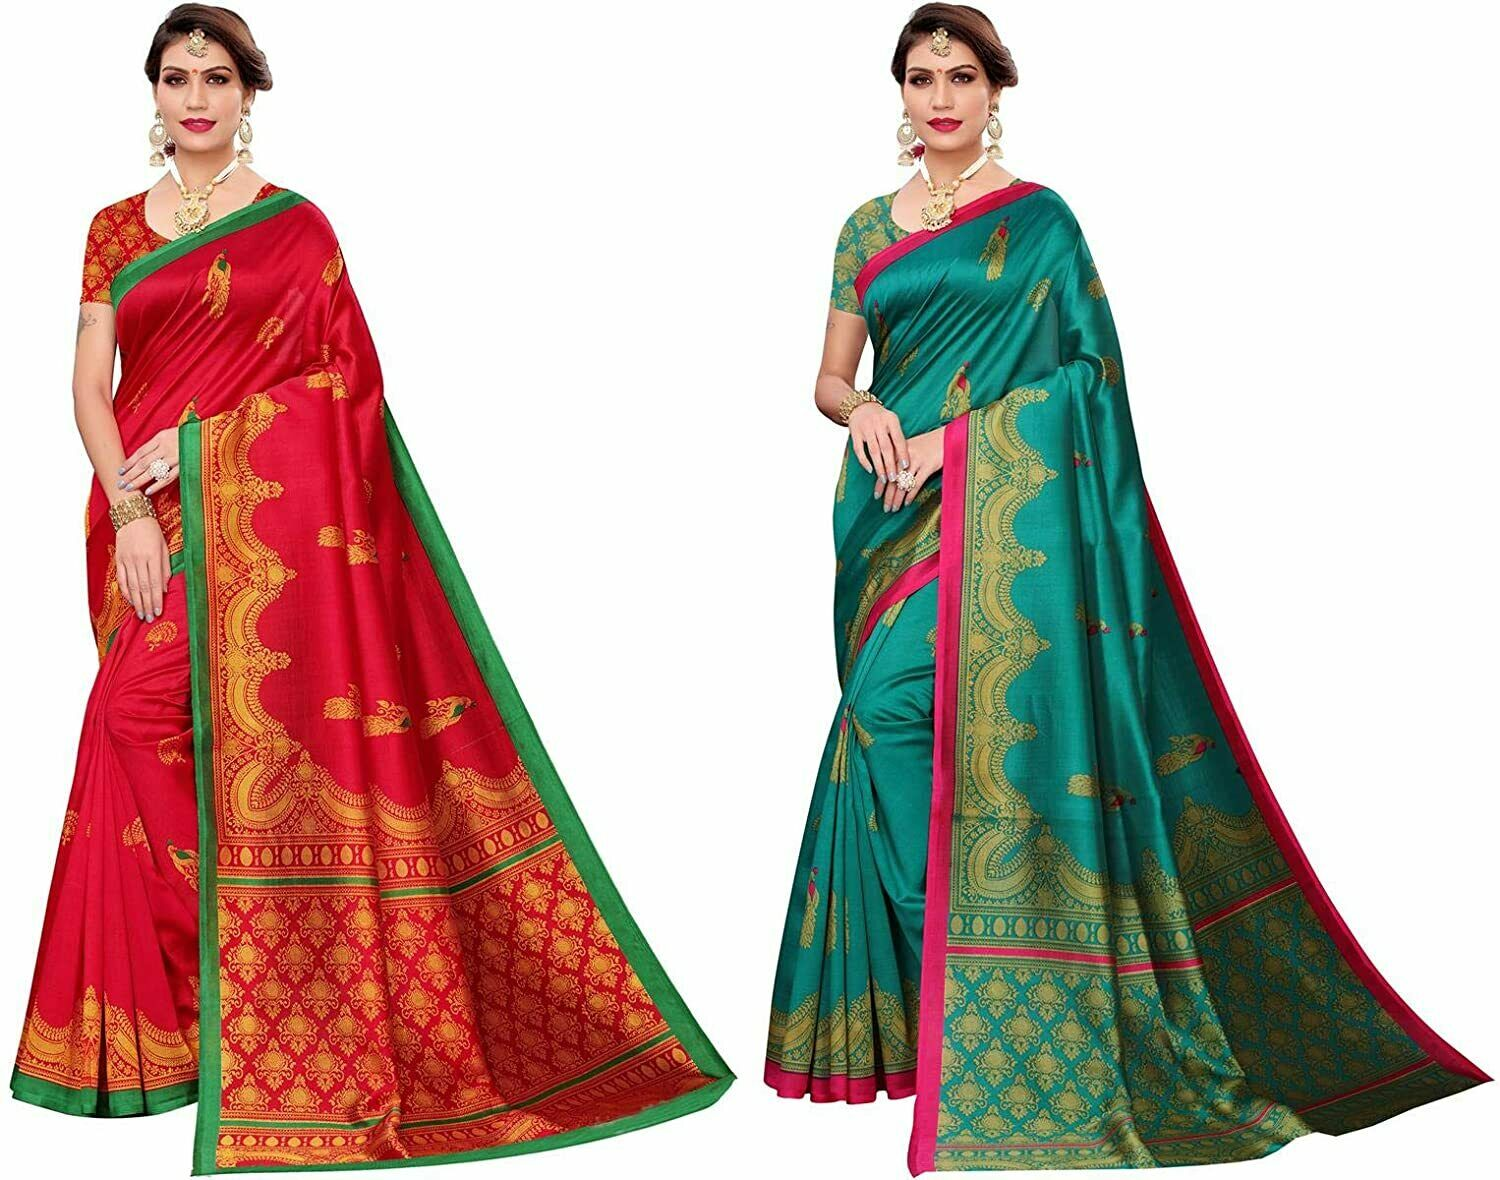 Women's Multicolor Art Silk Saree With Blouse Pack of 2 ( Free Shipping )